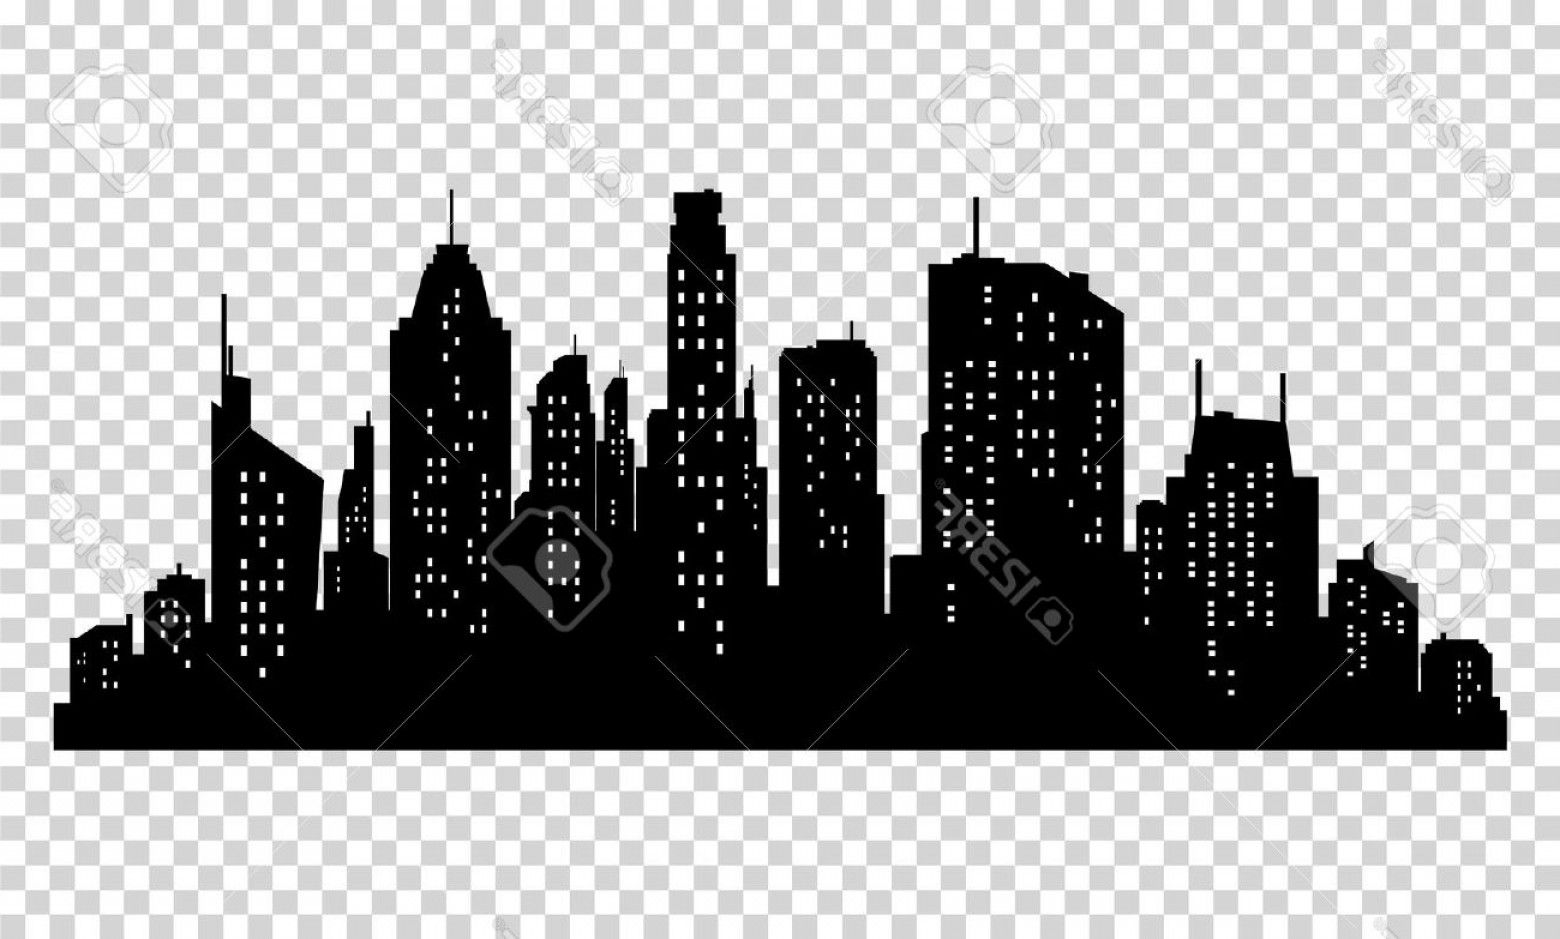 City Vector: Photostock Vector Set Of Vector City Silhouette And Elements For Design Isolated On Pixelated Background